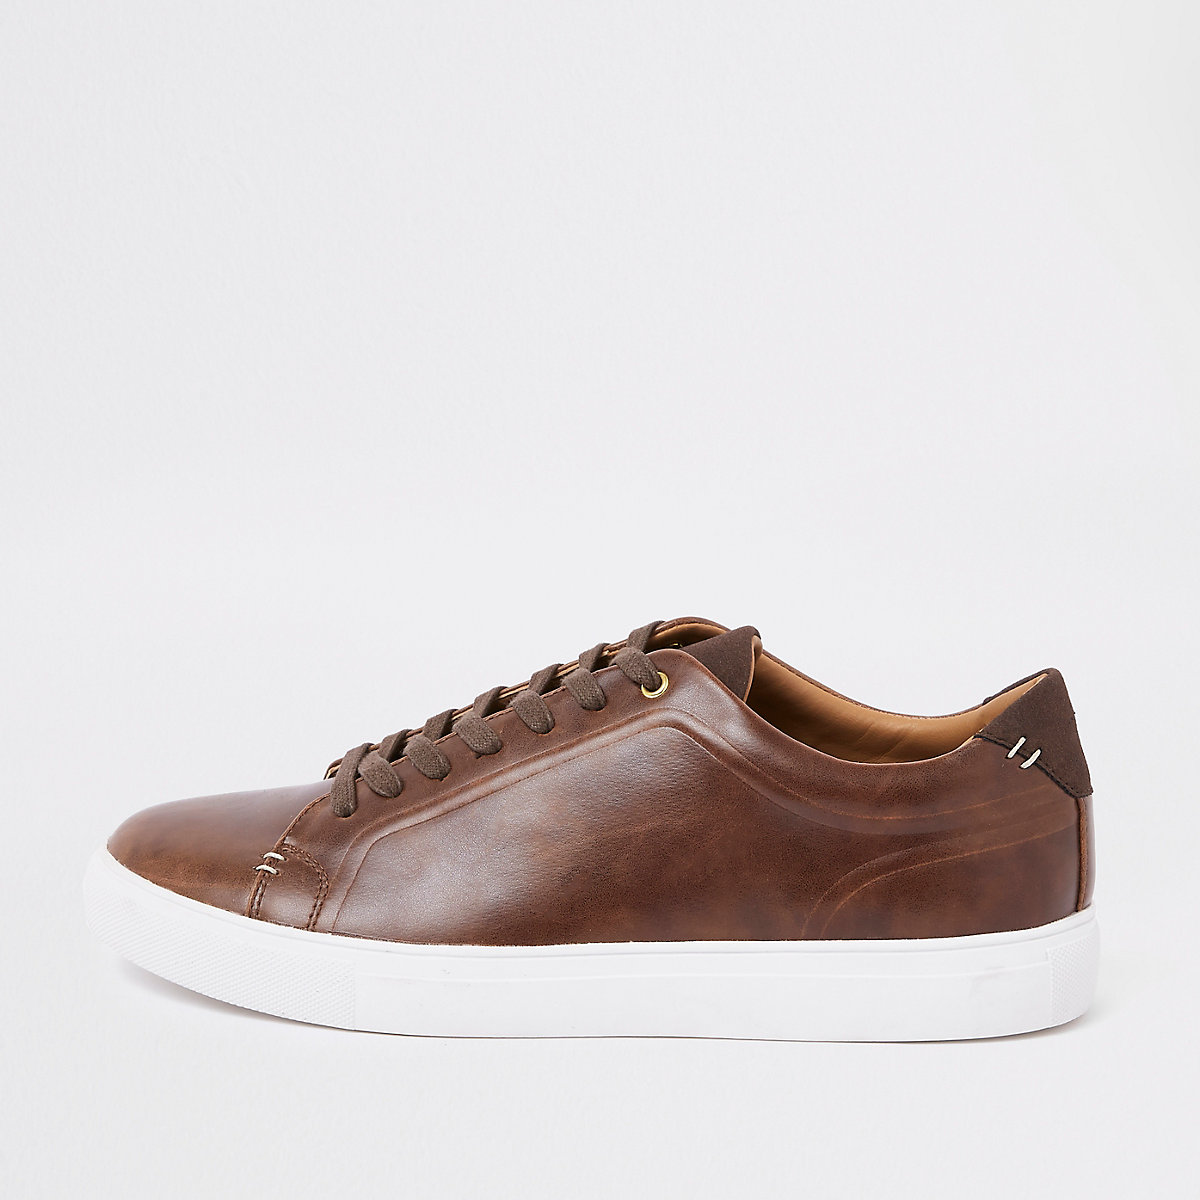 Brown leather lace-up sneakers